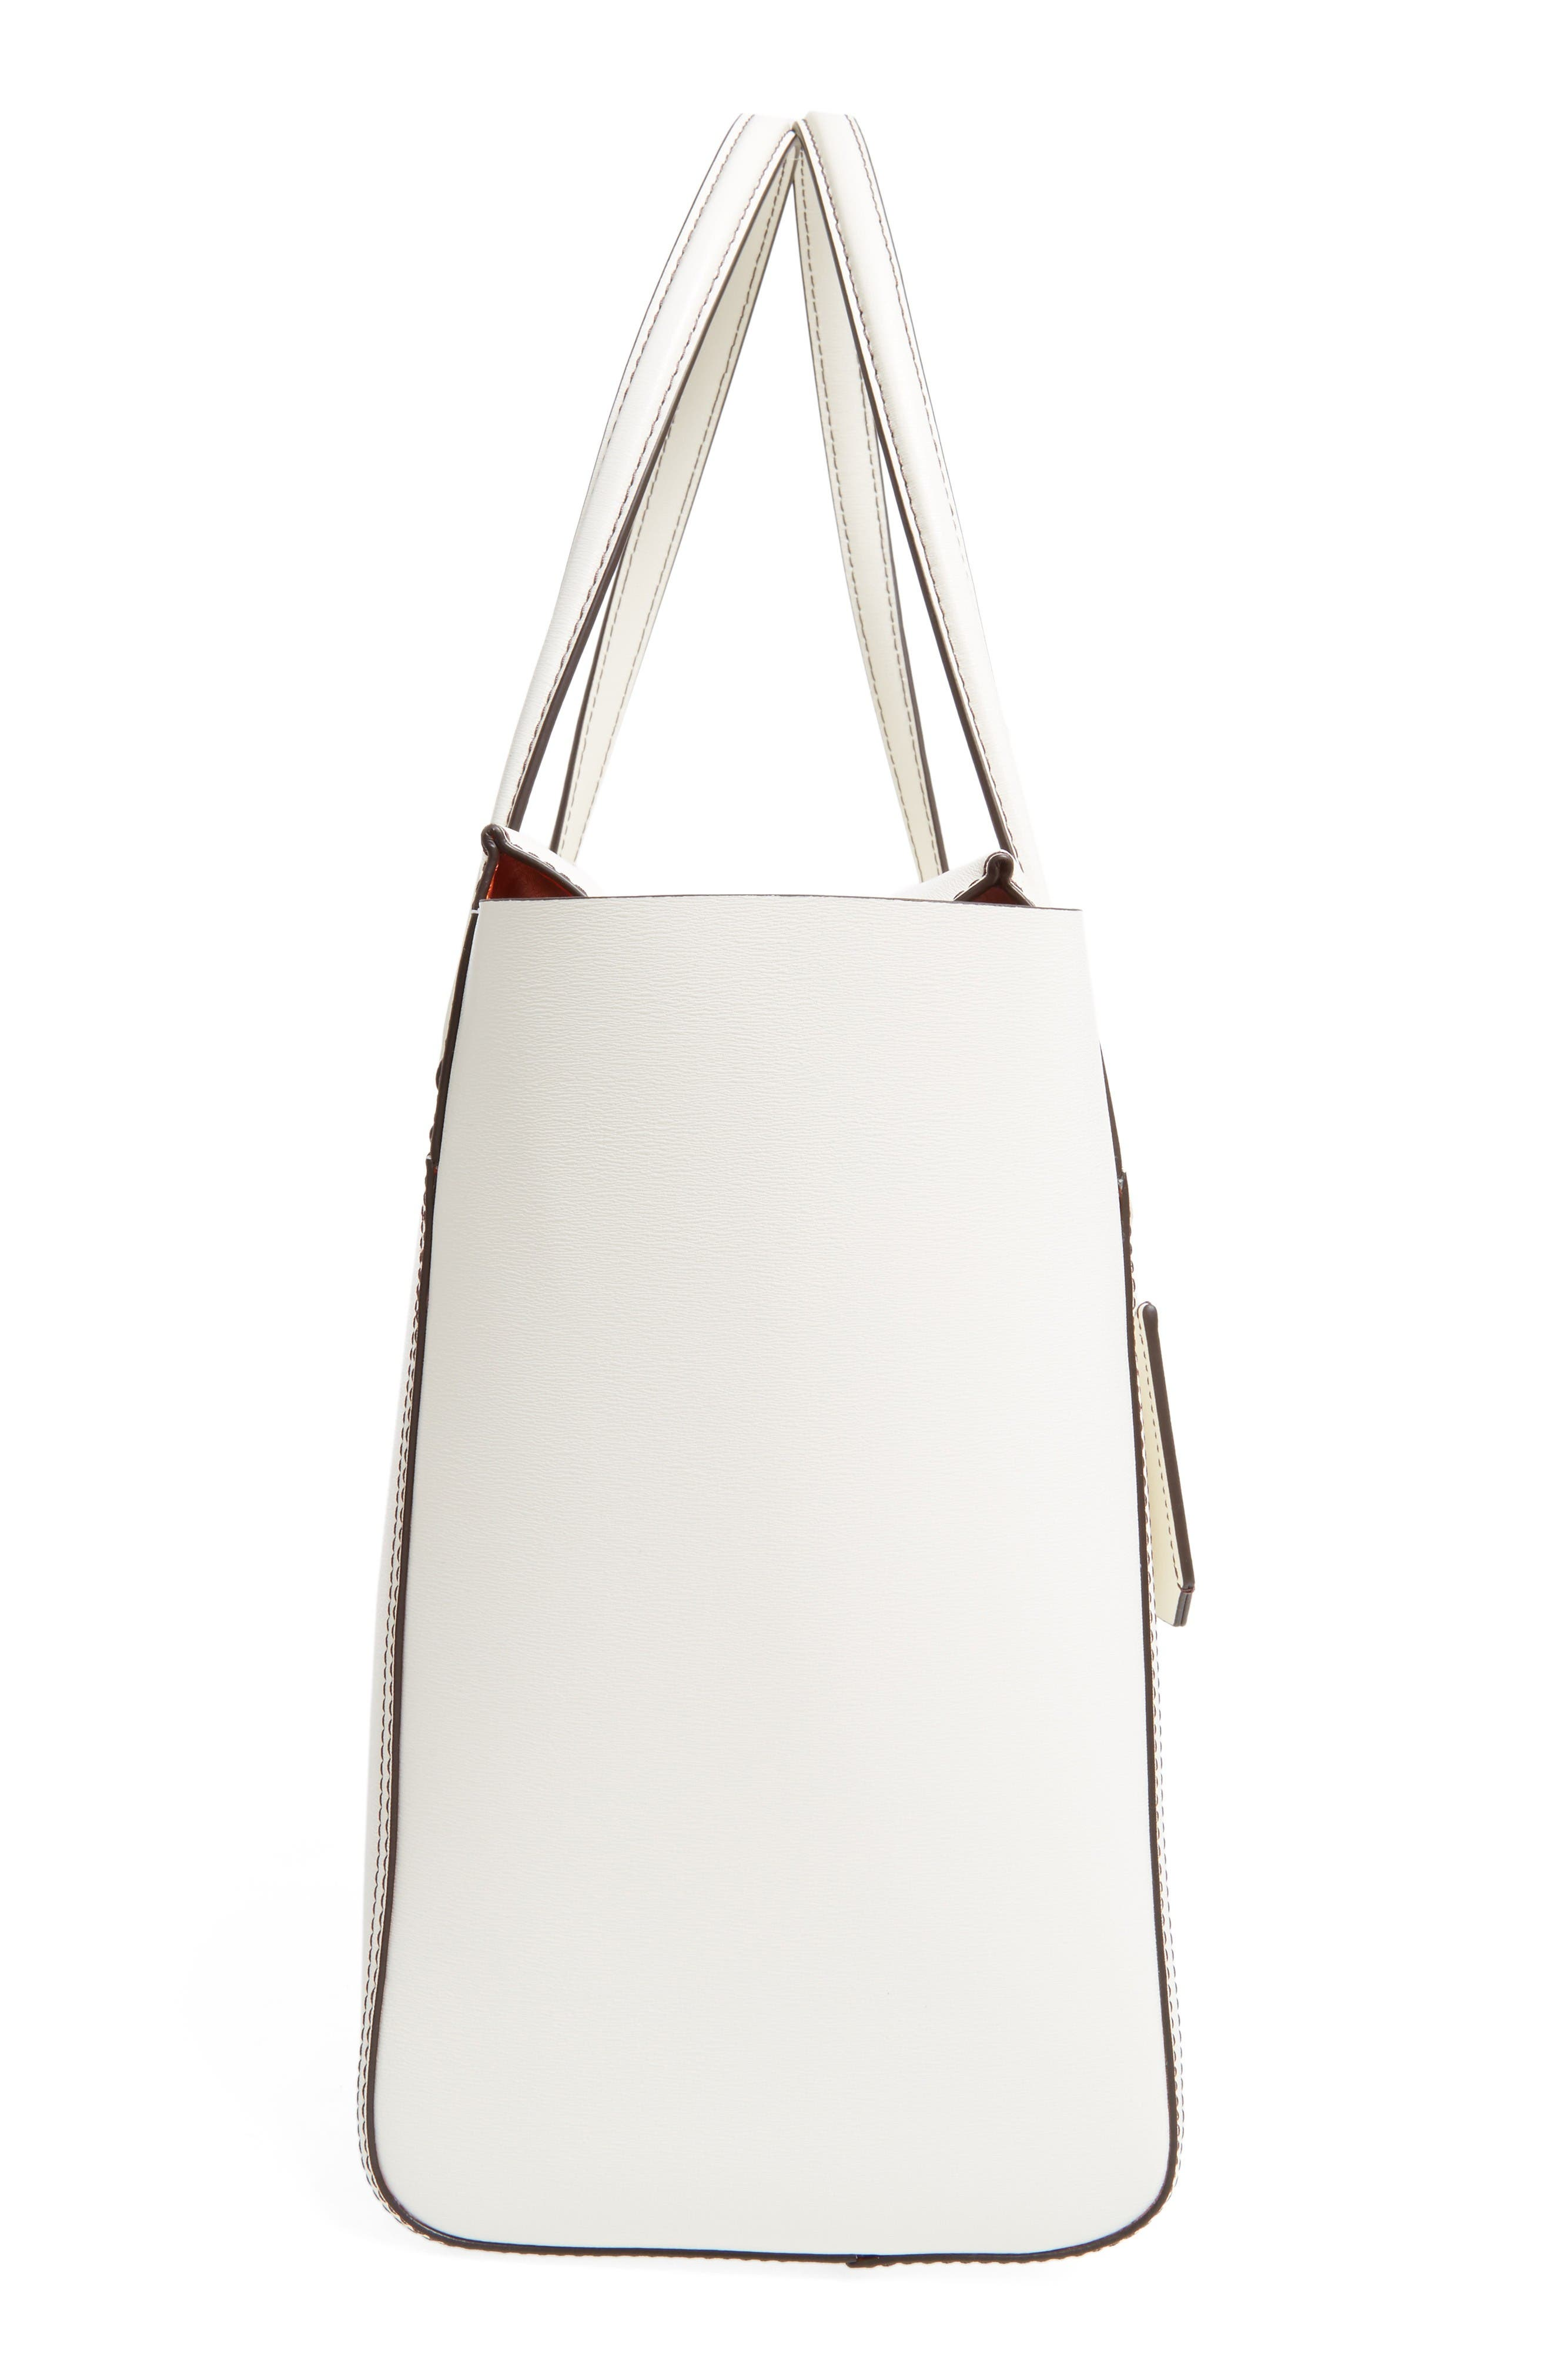 Parker Leather Tote,                             Alternate thumbnail 5, color,                             New Ivory/ Mango